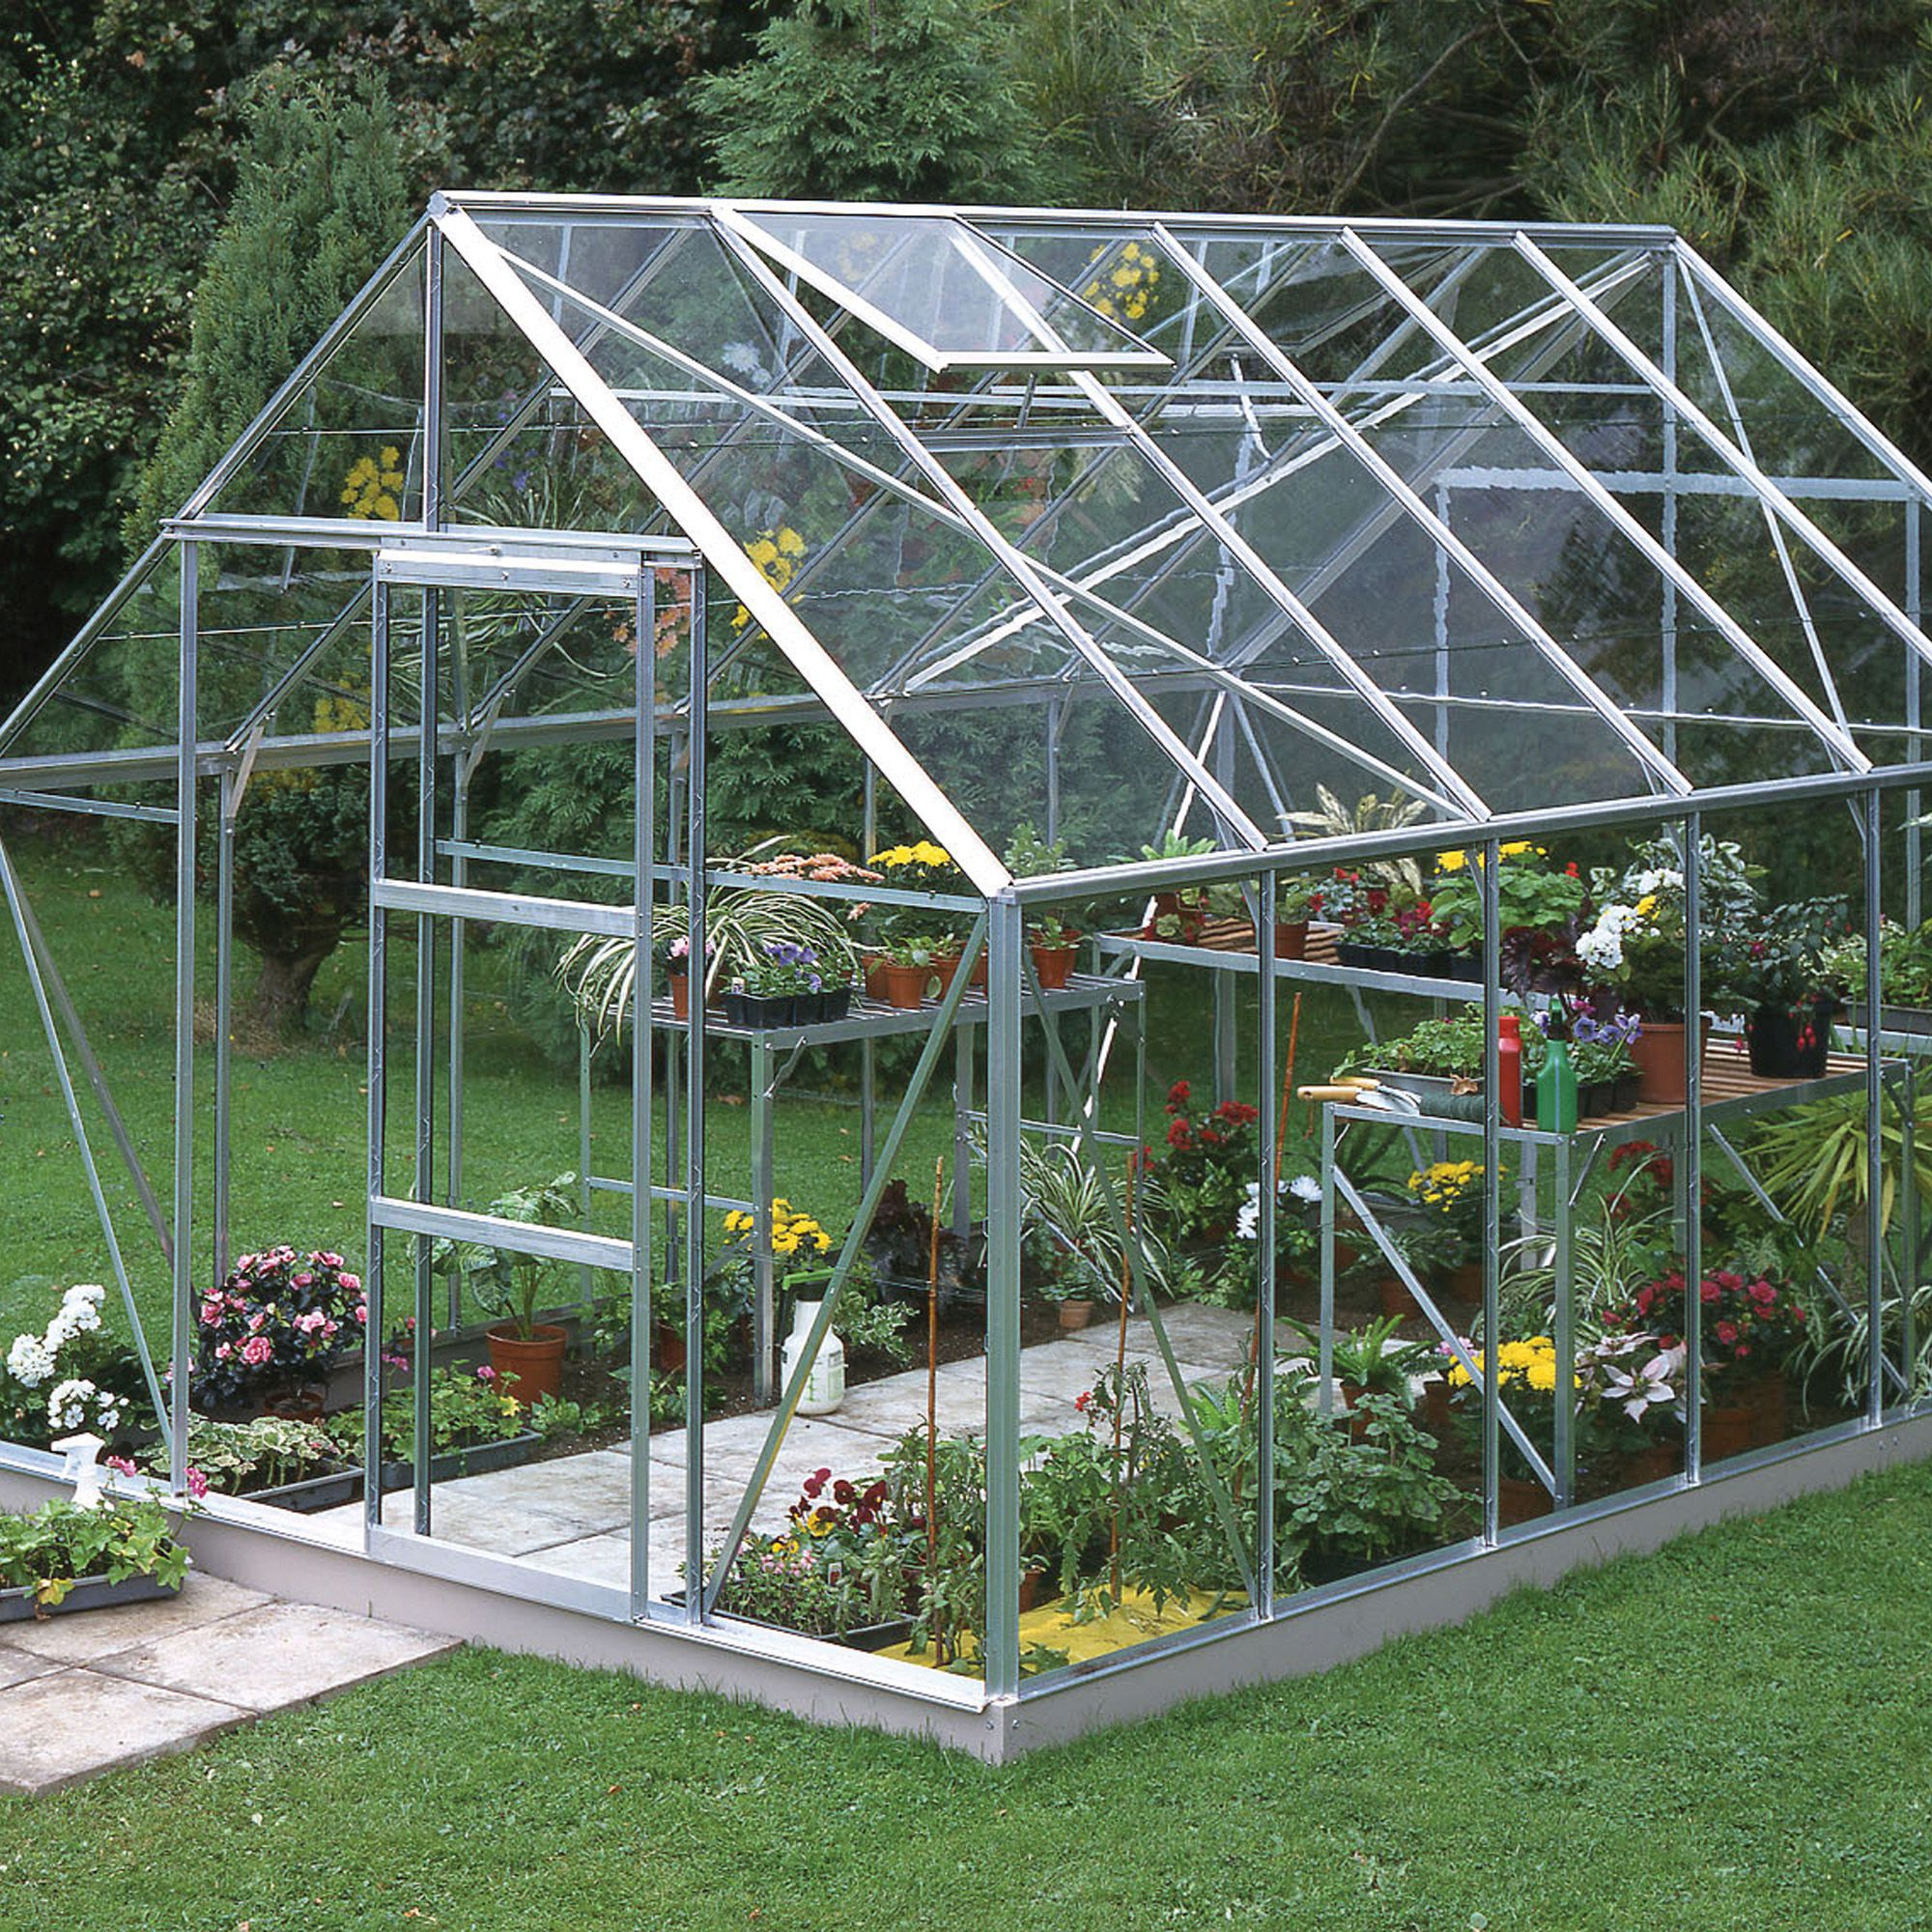 B Amp Q Premier Metal 6x4 Toughened Safety Glass Greenhouse